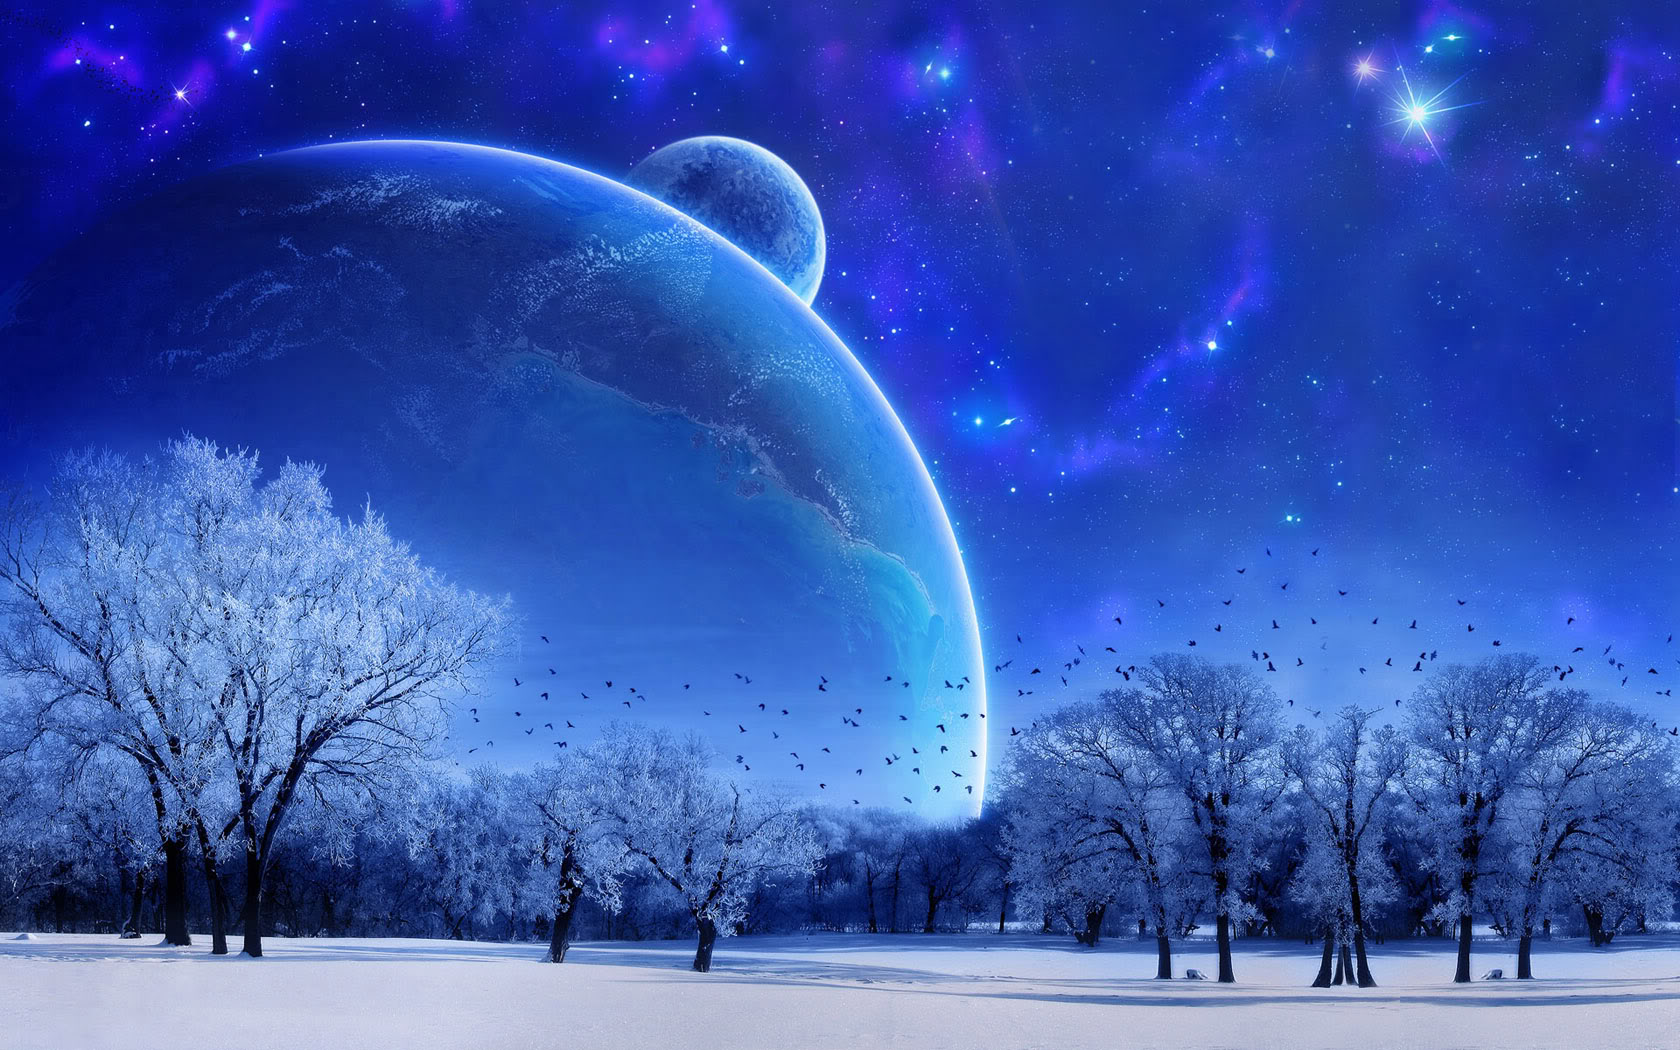 High quality Peacefull Winter Science Fiction (Sci-fi) wallpaper ...